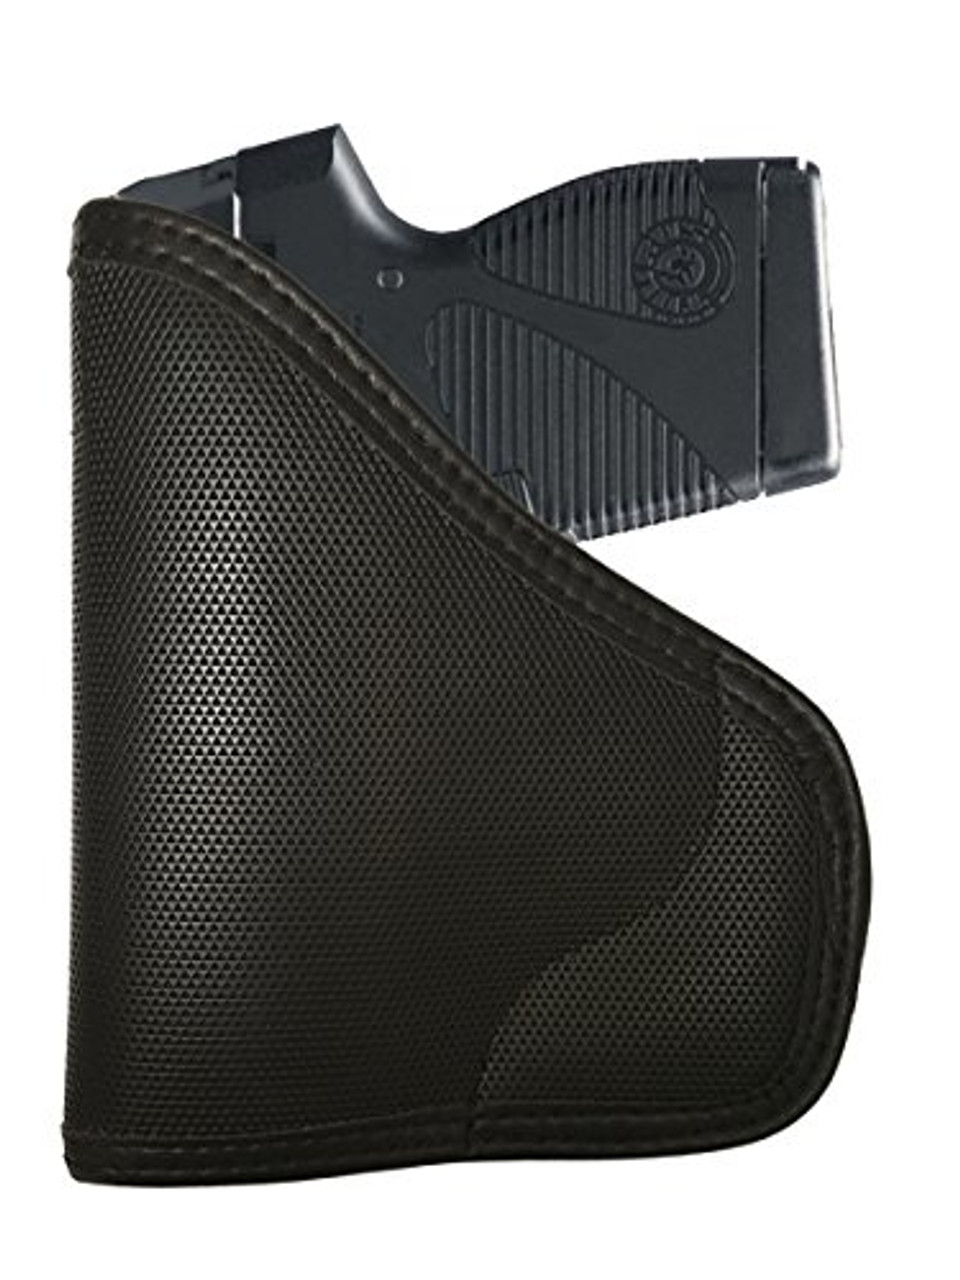 Taurus PT732 TCP 380 and PT738 32 Caliber With Laser Custom Fit Leather Trimmed orGUNizer Poly Pocket Holster For Concealed Carry Comfort by Garrison Grip (D)